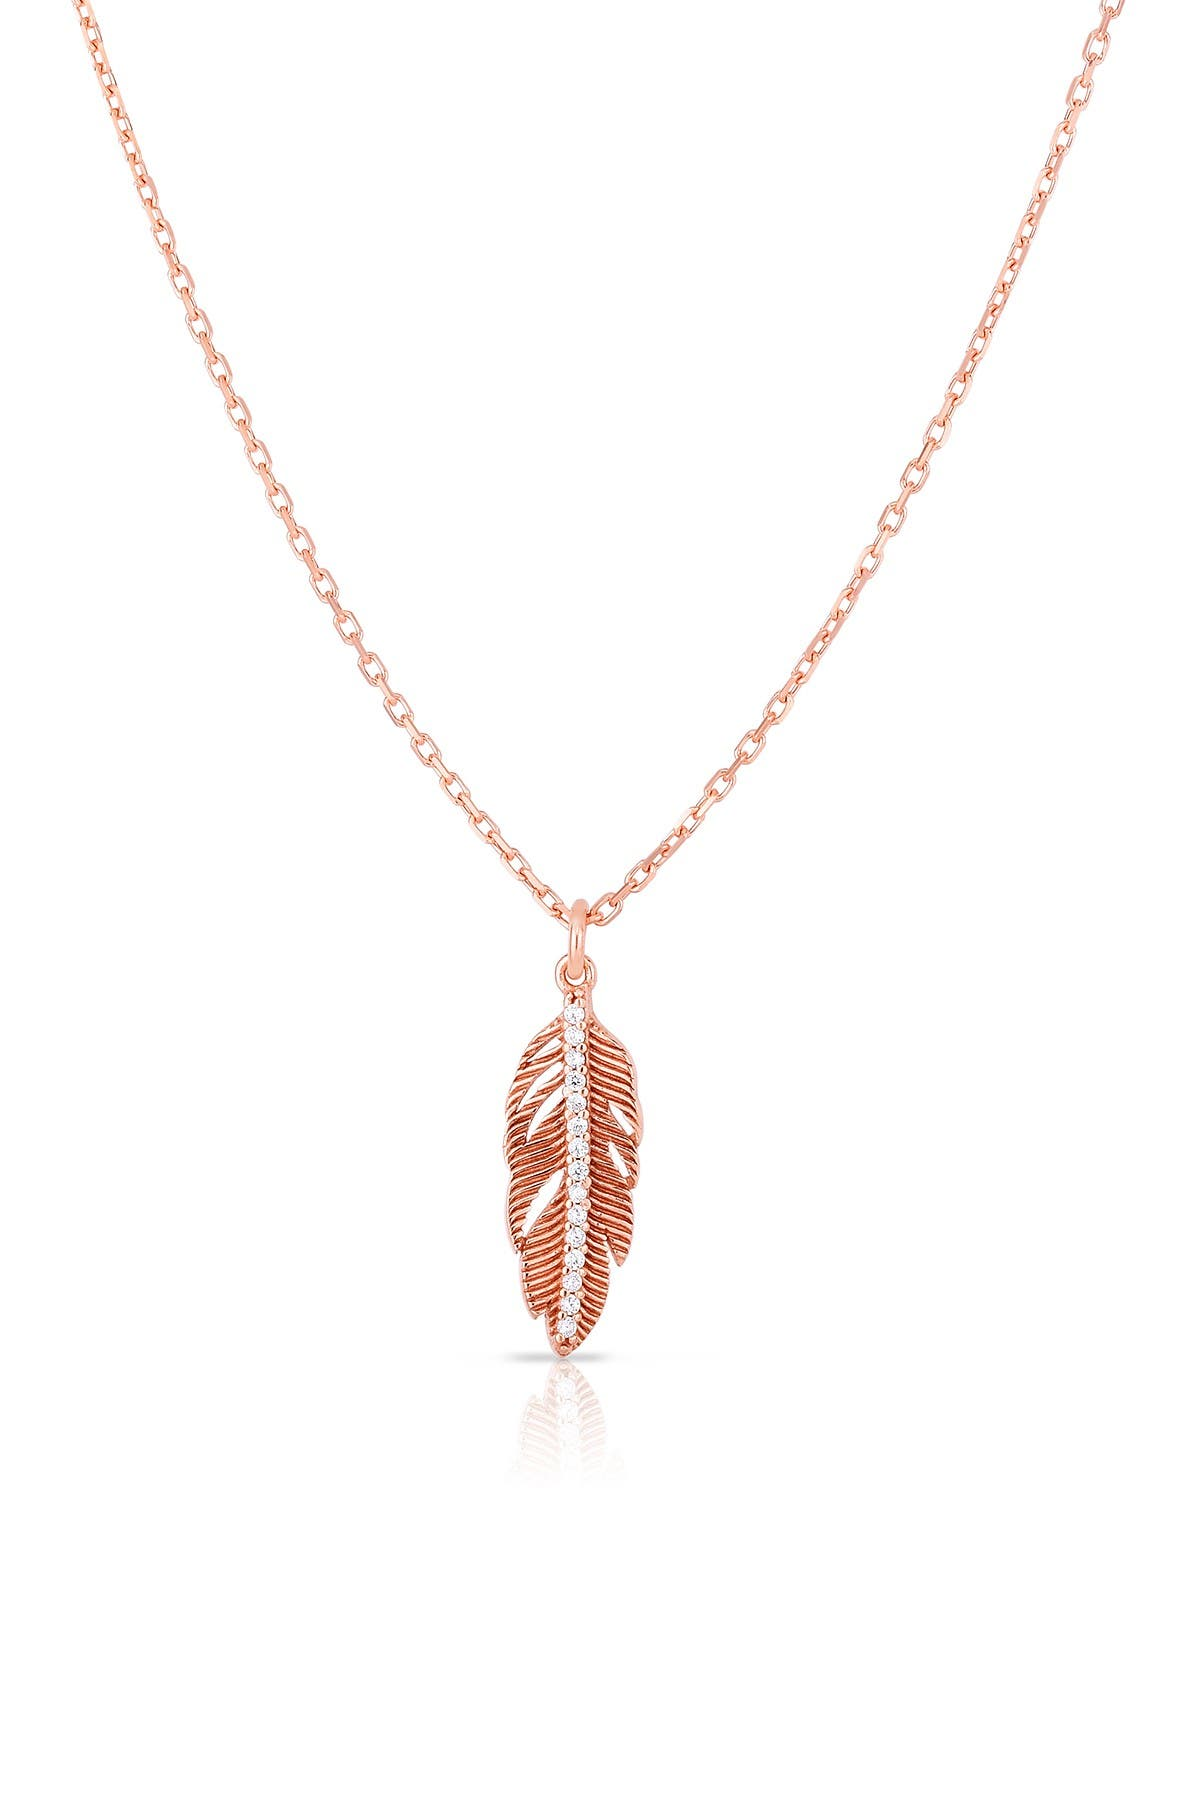 Image of Sphera Milano 18K Rose Gold Plated Sterling Silver Feather Pendant Necklace